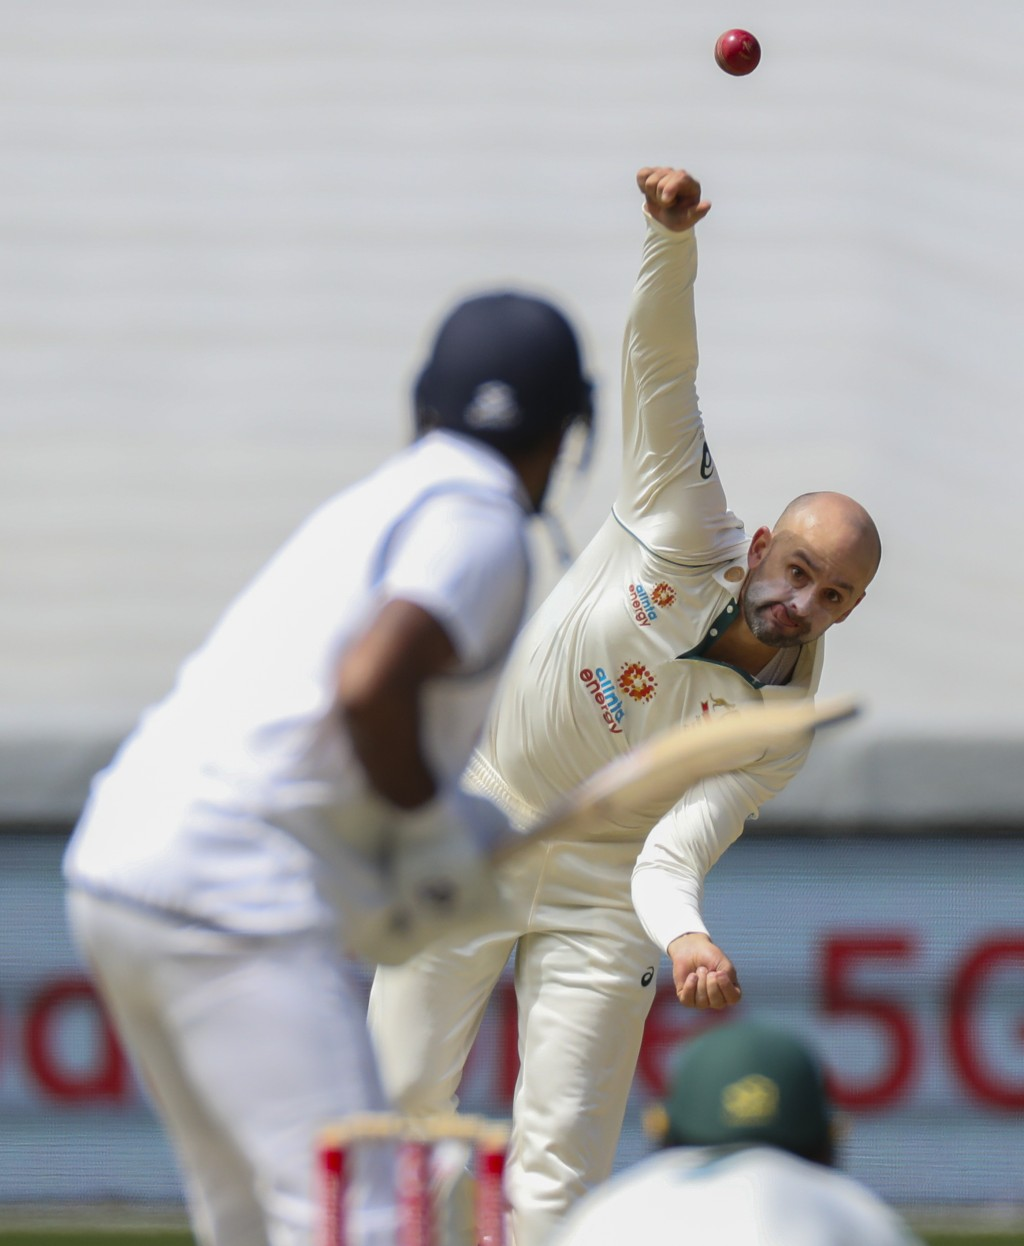 Australia's Nathan Lyon bowls during play on day three of the second cricket test between India and Australia at the Melbourne Cricket Ground, Melbour...